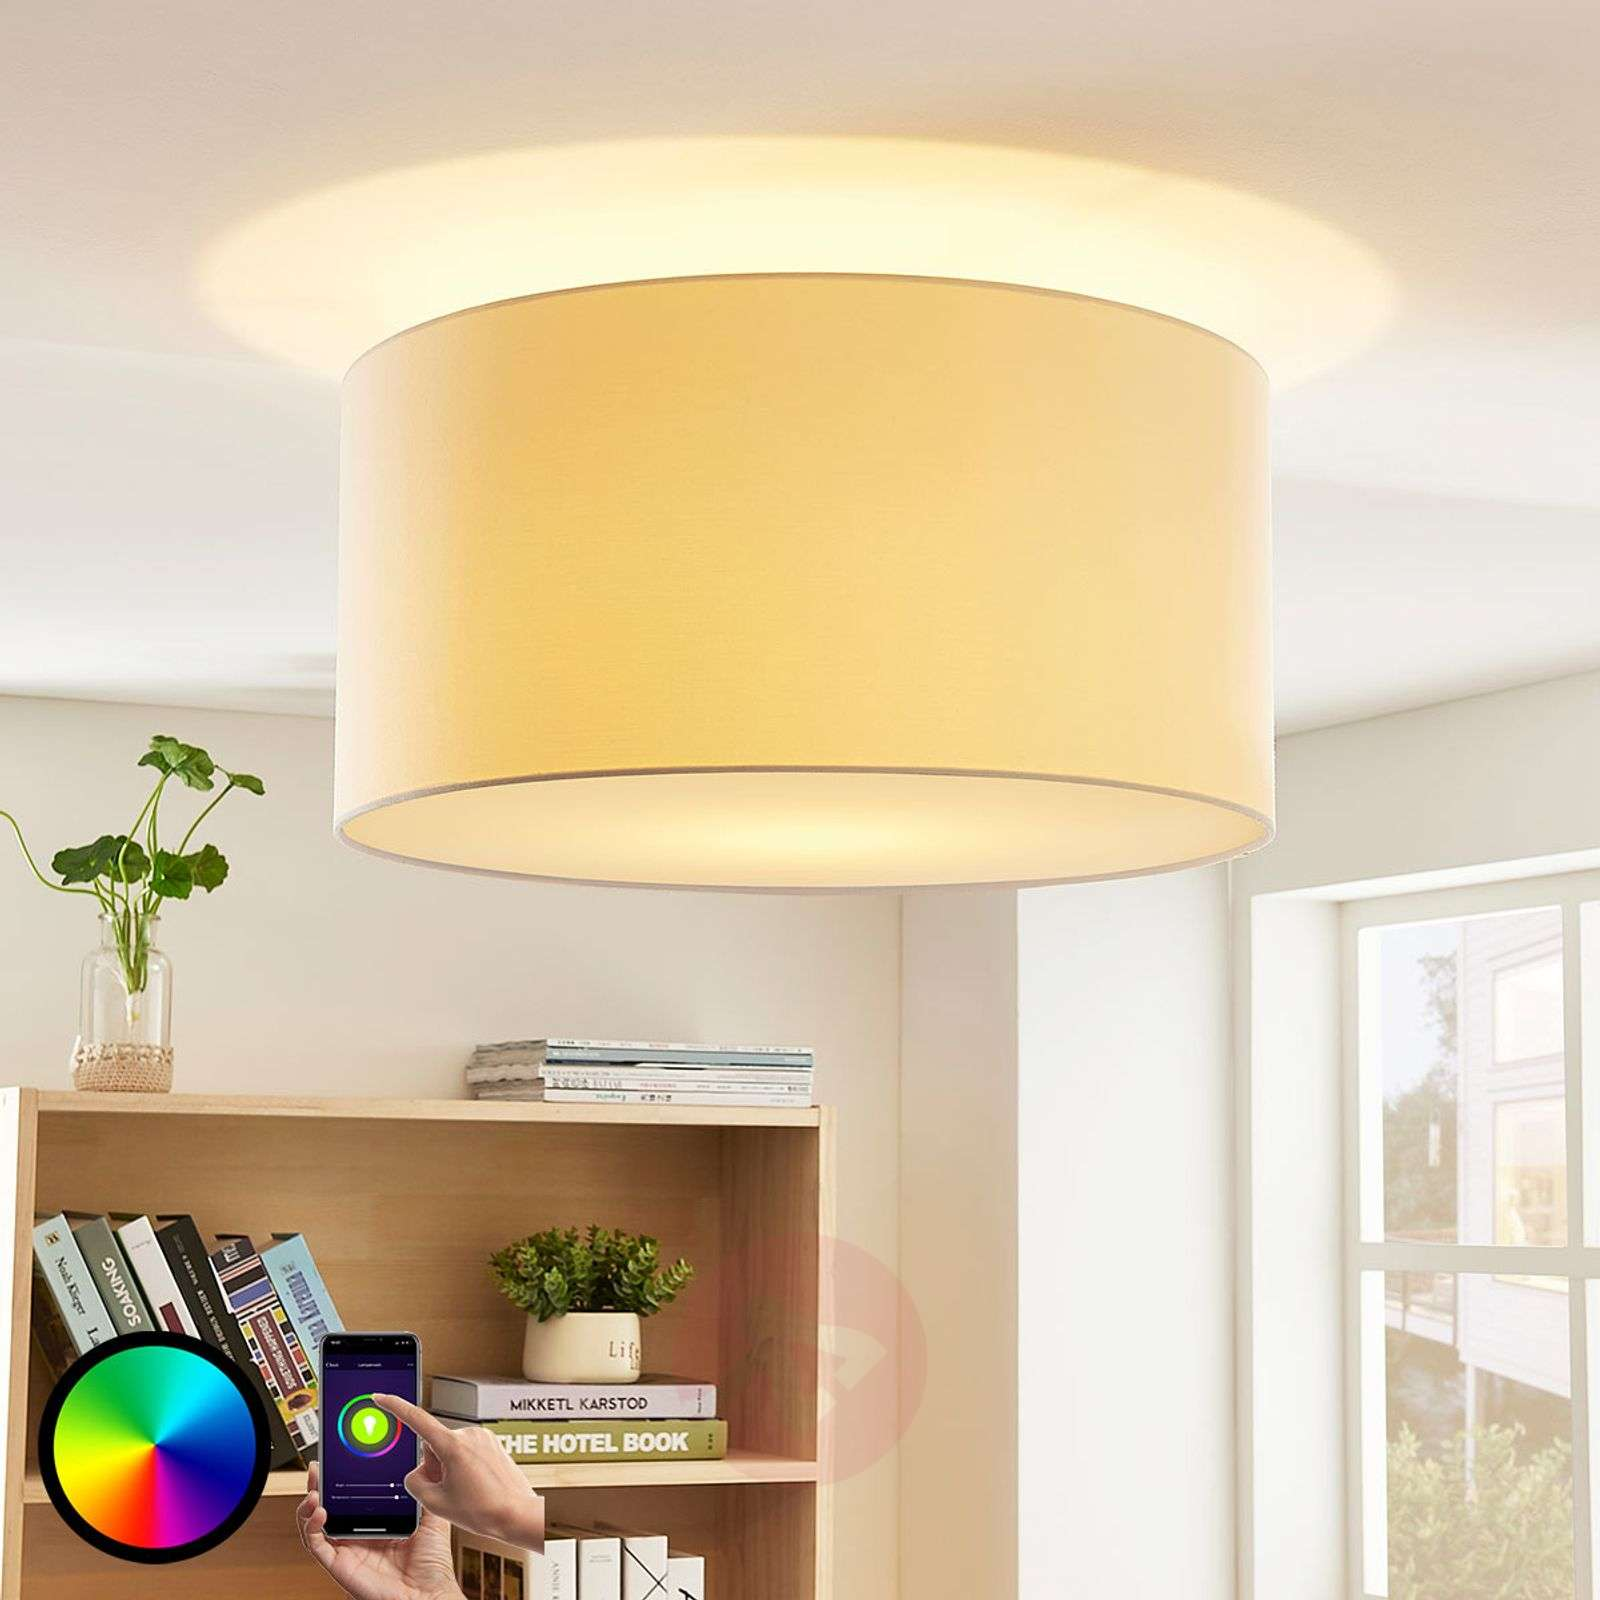 Lindby Smart lampa sufitowa LED RGB Everly, app